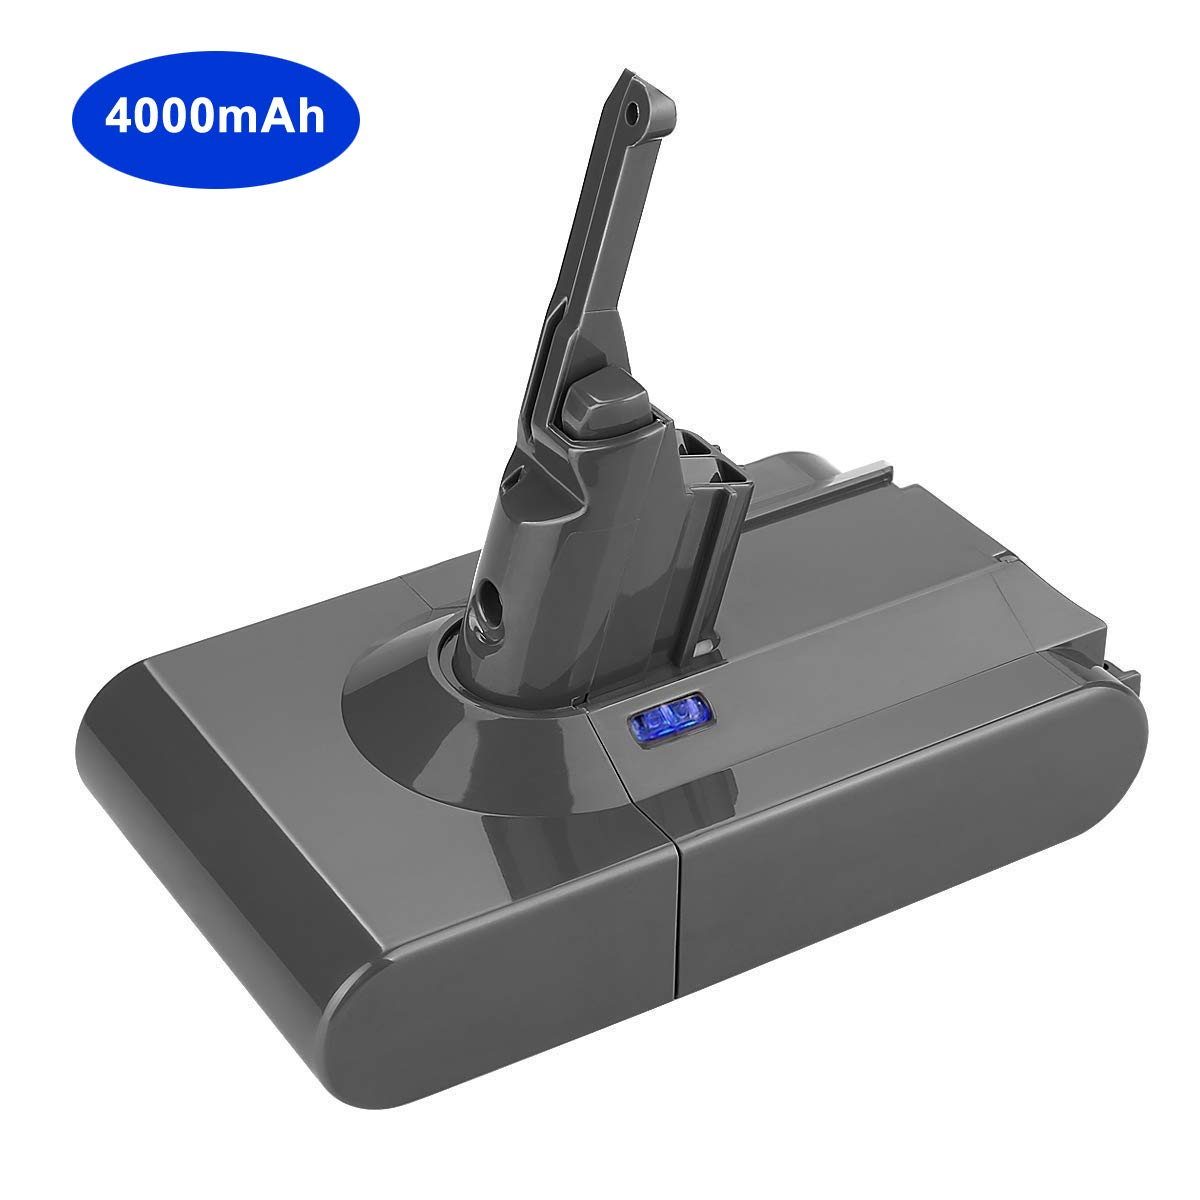 【Upgrade】21.6V 4000mAh Lithium Replacement Battery for Dyson V8 Absolute Cordless Handheld Vacuum Cleaner